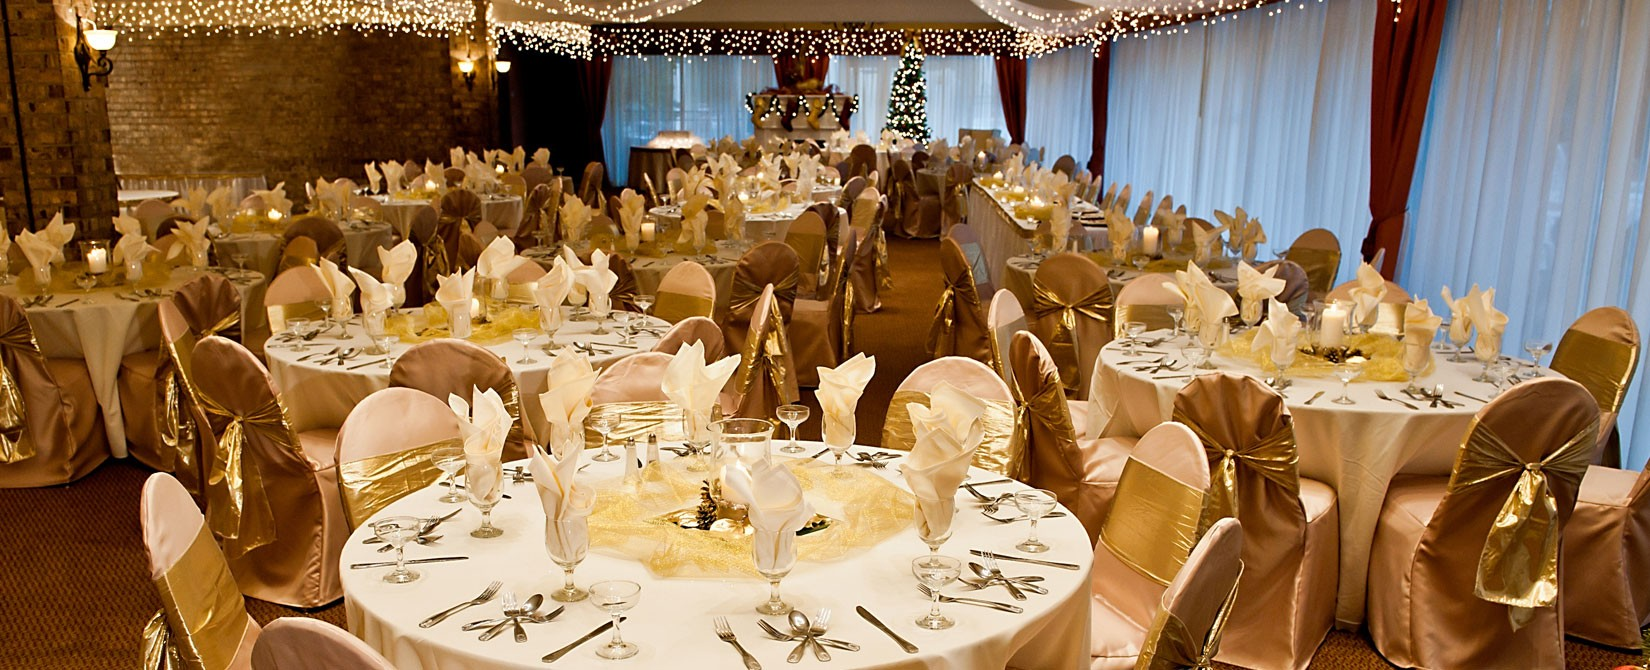 gold and white wedding place settings and decorations at Caravelle Resort